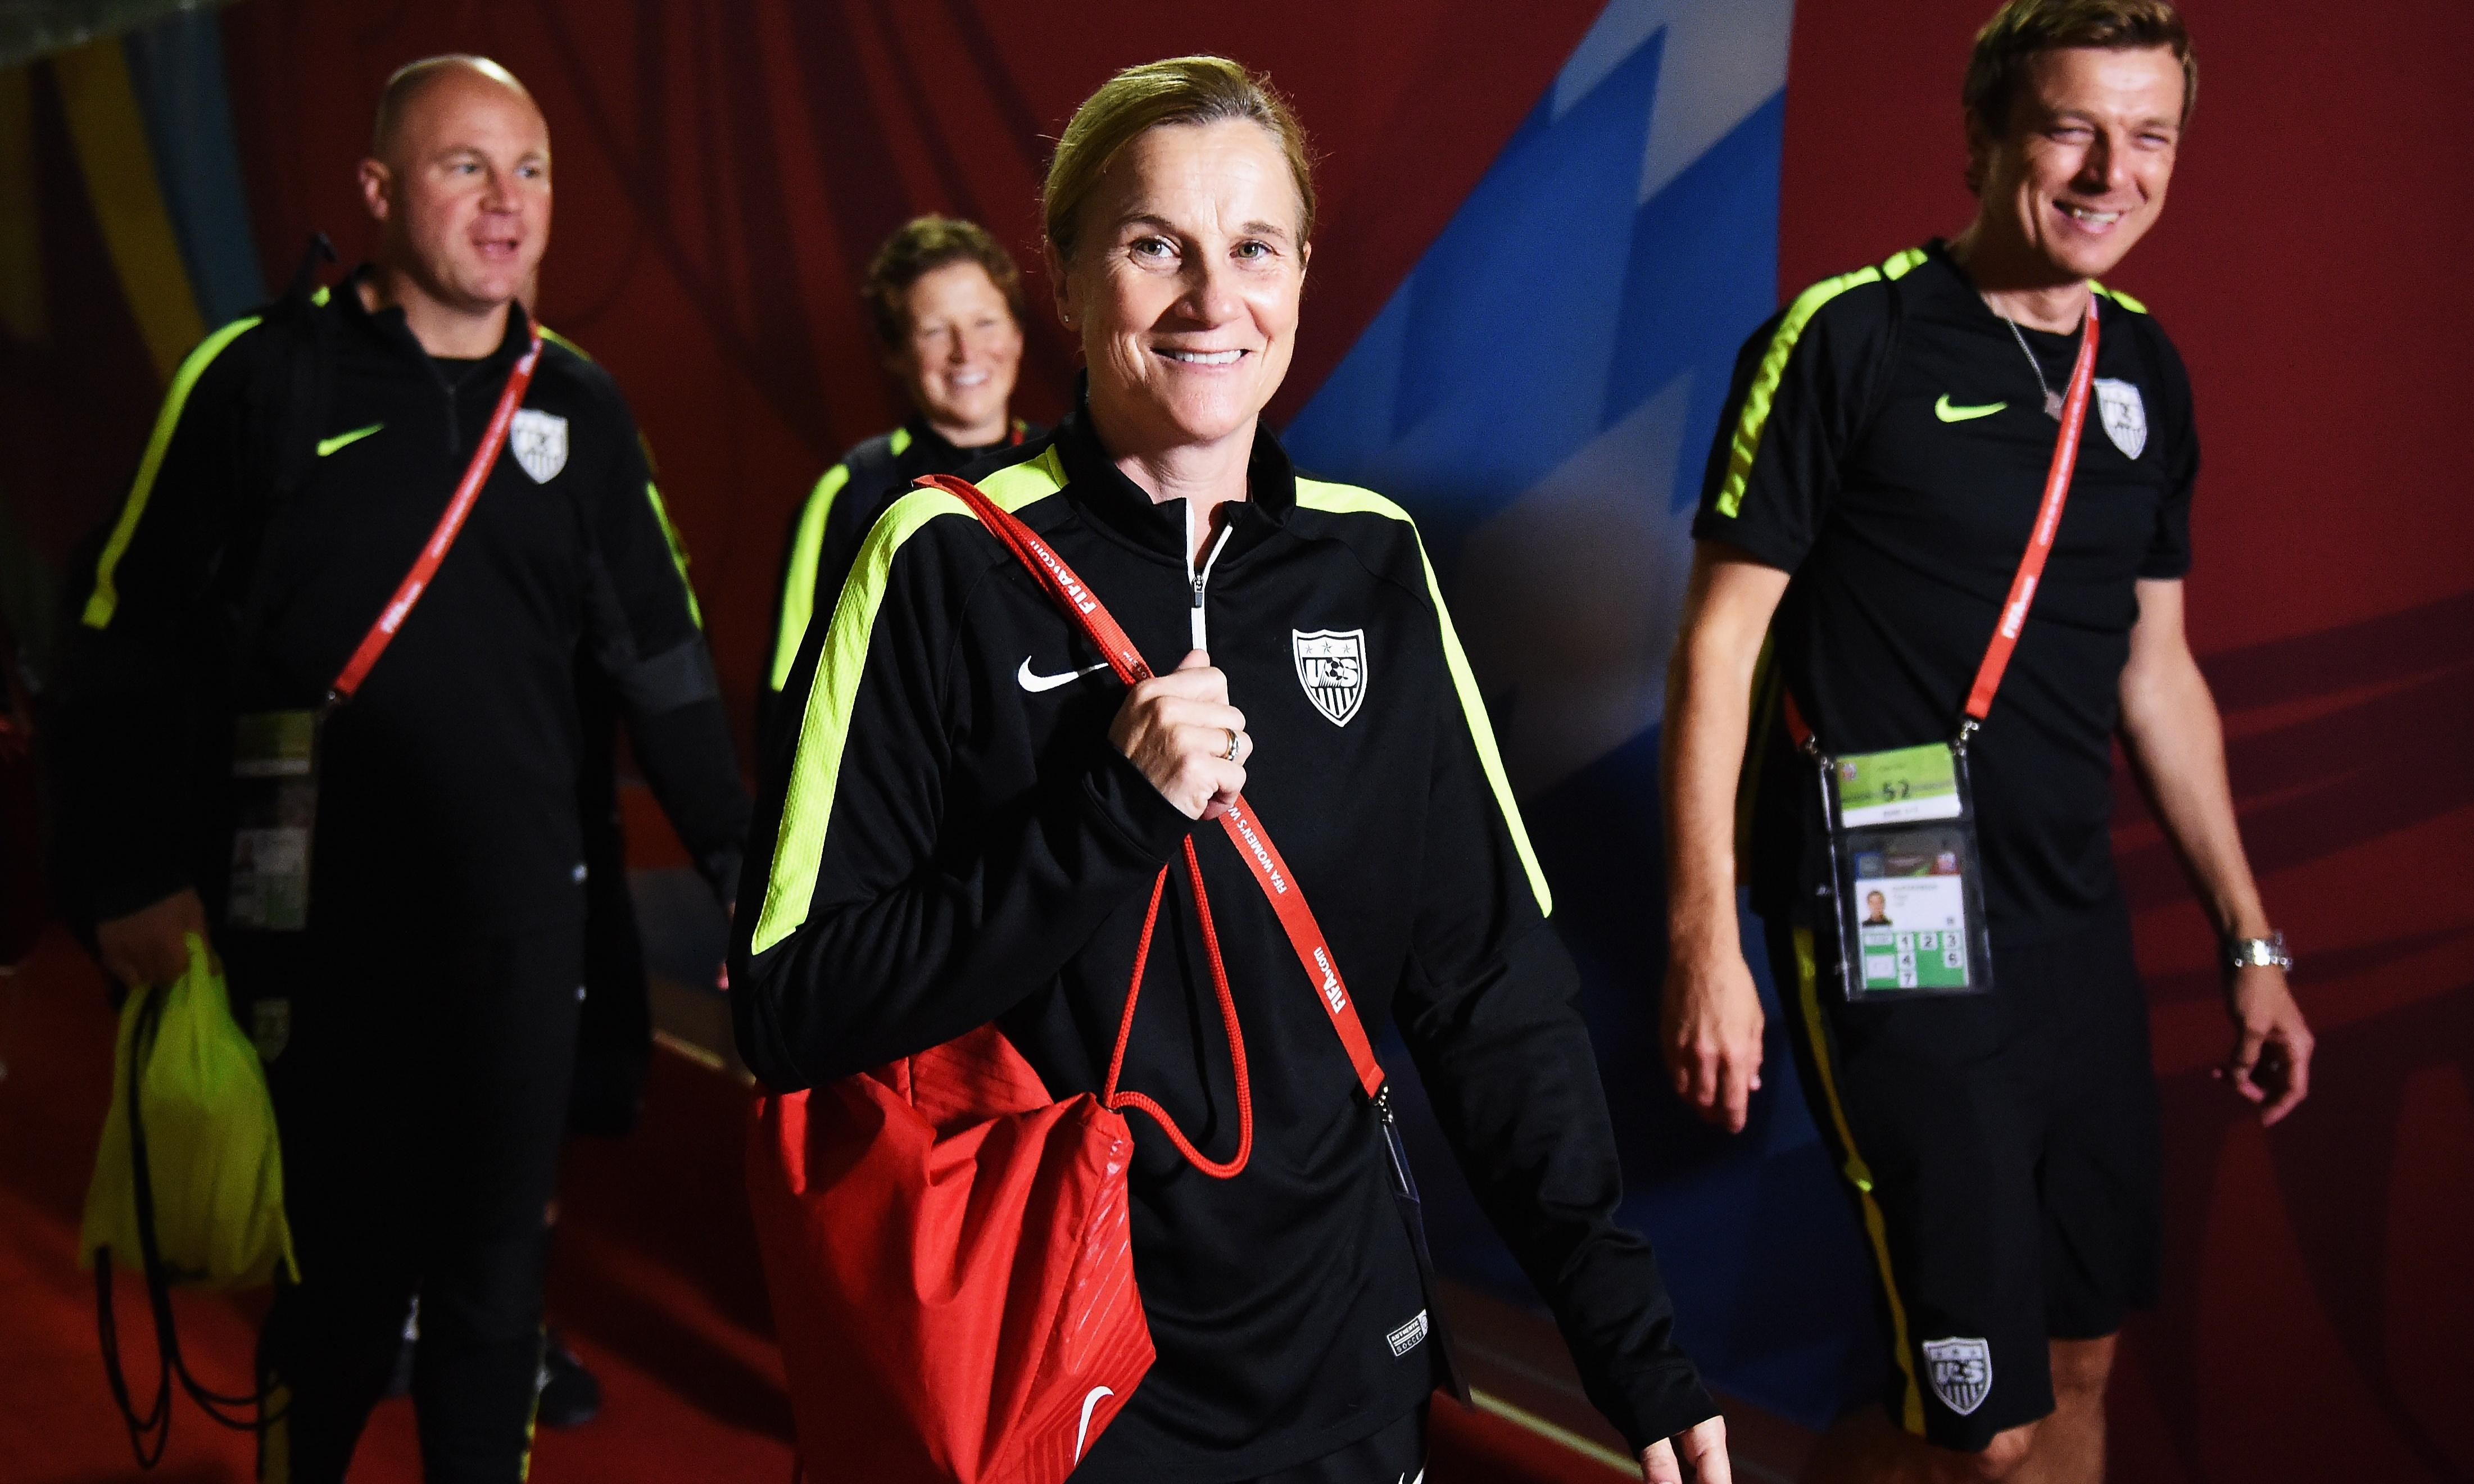 US World Cup winning coach Ellis was paid less than the men's U-20 coach. Why?